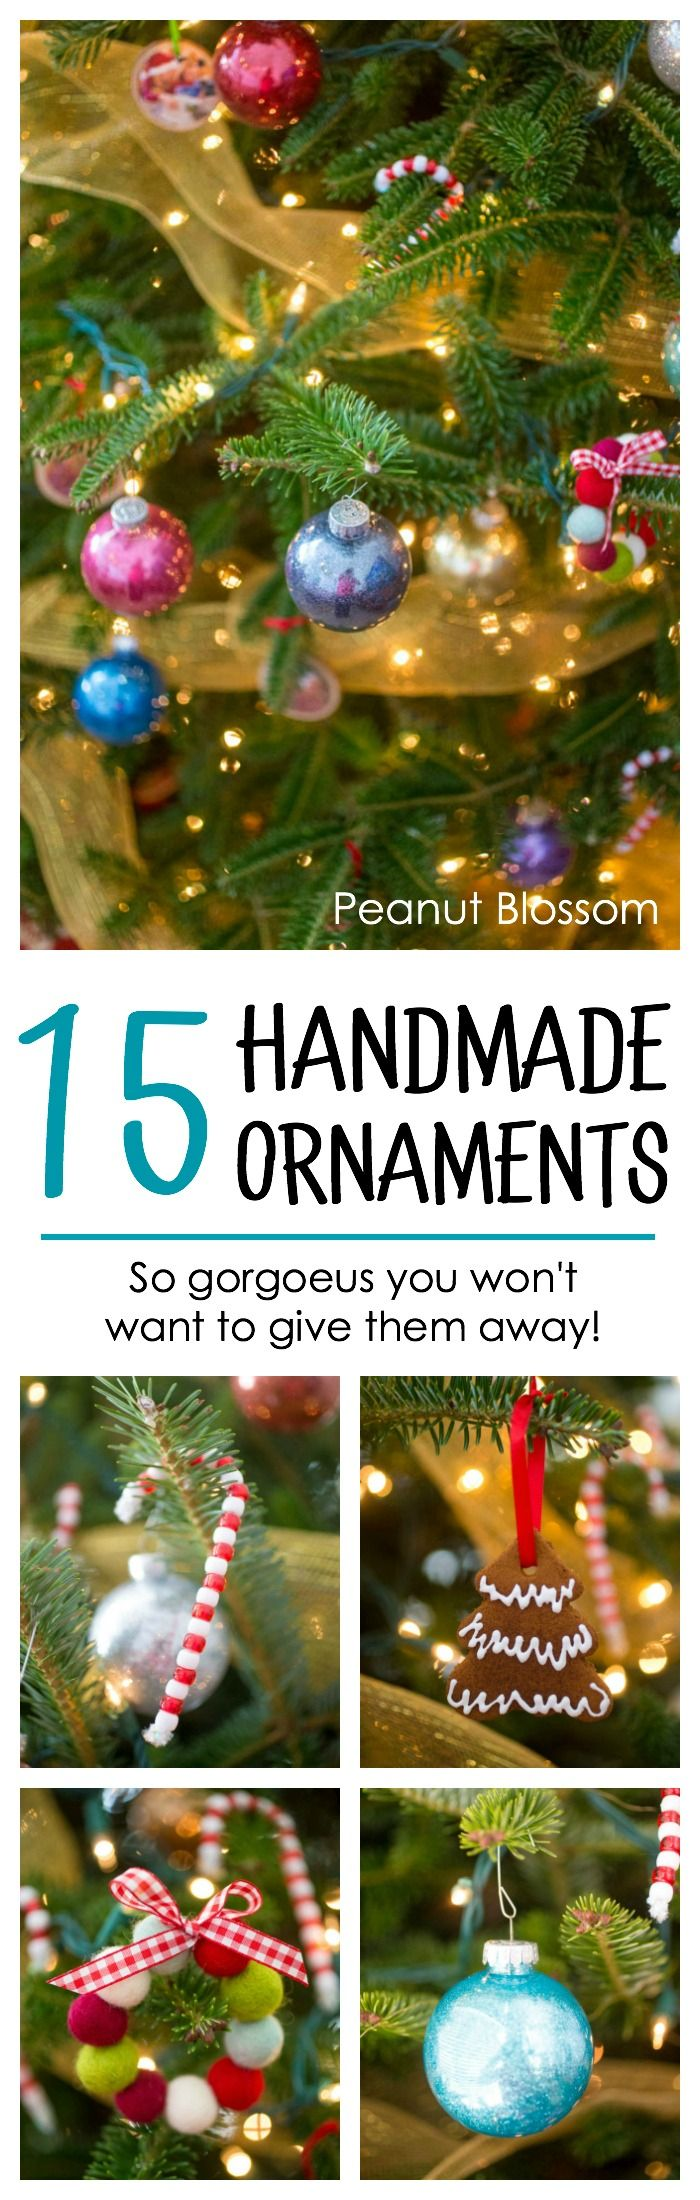 118 best Projects to do images on Pinterest | Crafting tools ...